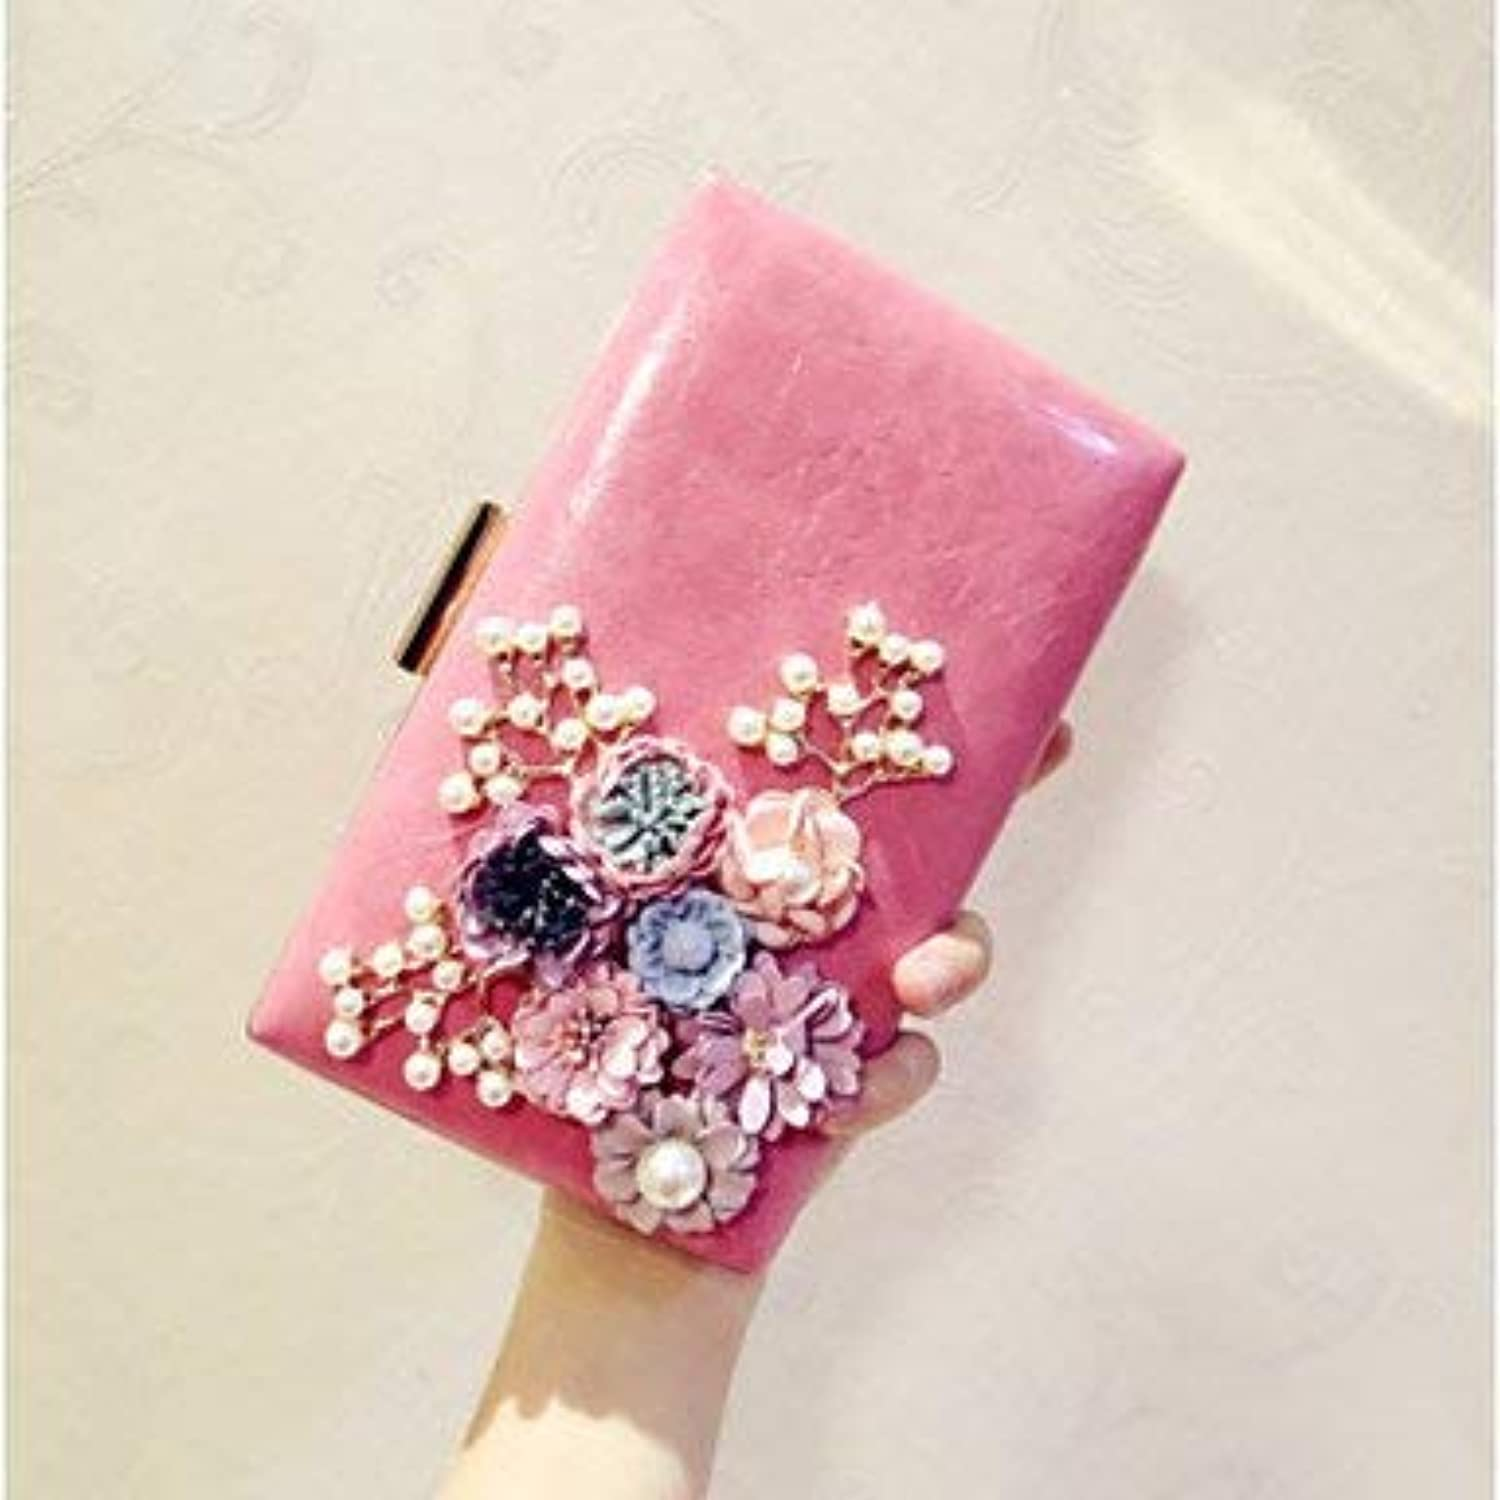 Clutch Bag Women Evening Bag PU All Seasons Event Party Party & Evening Club Baguette Flower Magnetic Peach blueshing Pink Black White Dinner Purse (color   Peach)